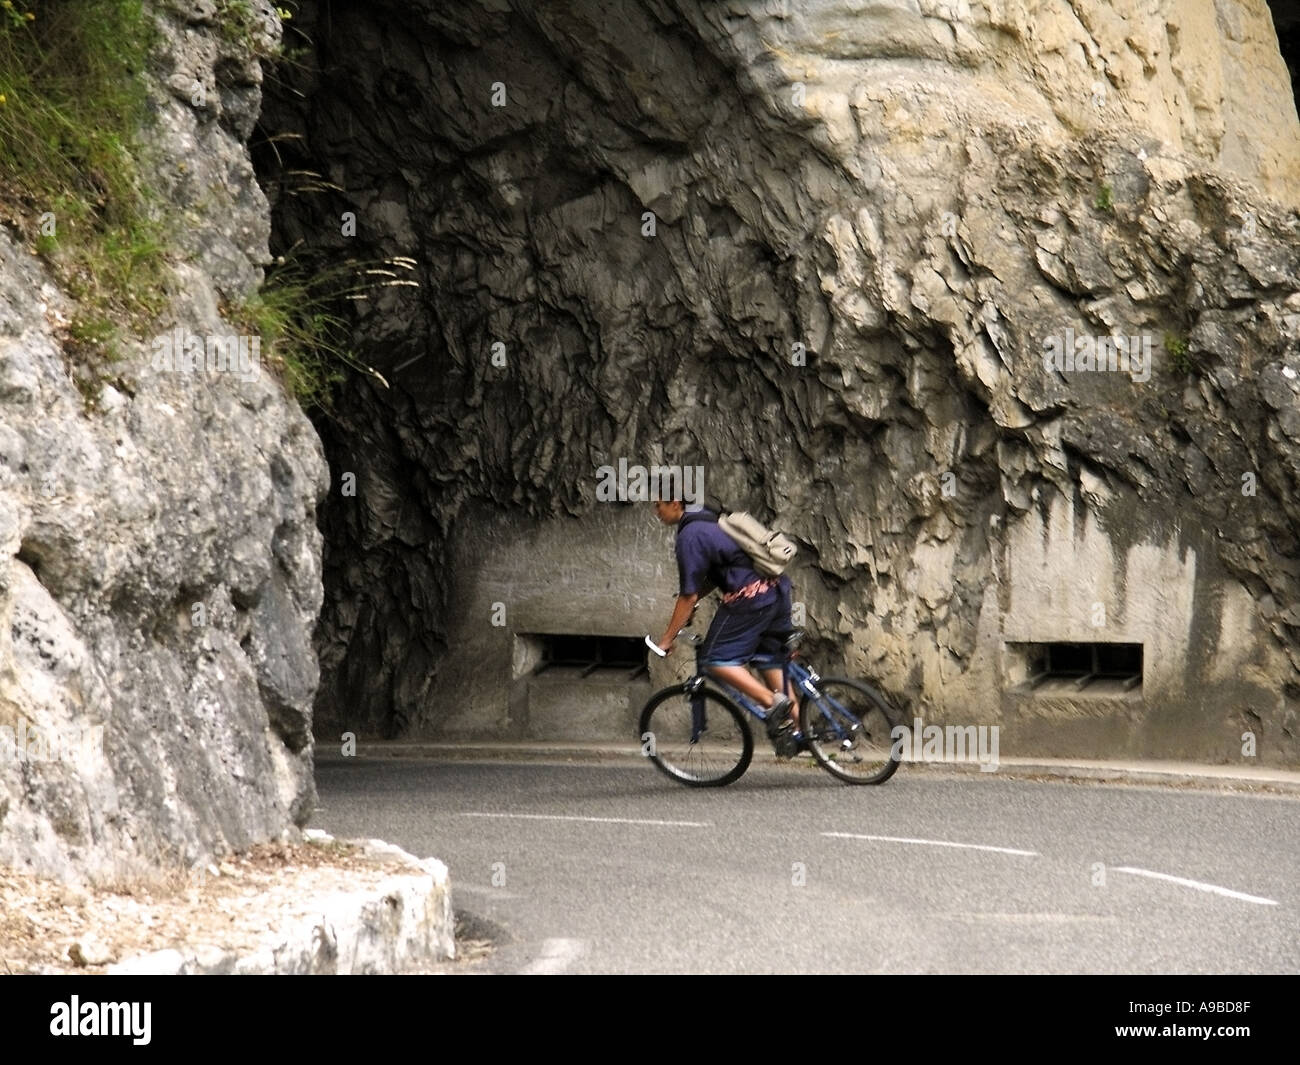 france teenage boy on bicycle cycling into tunnel - Stock Image